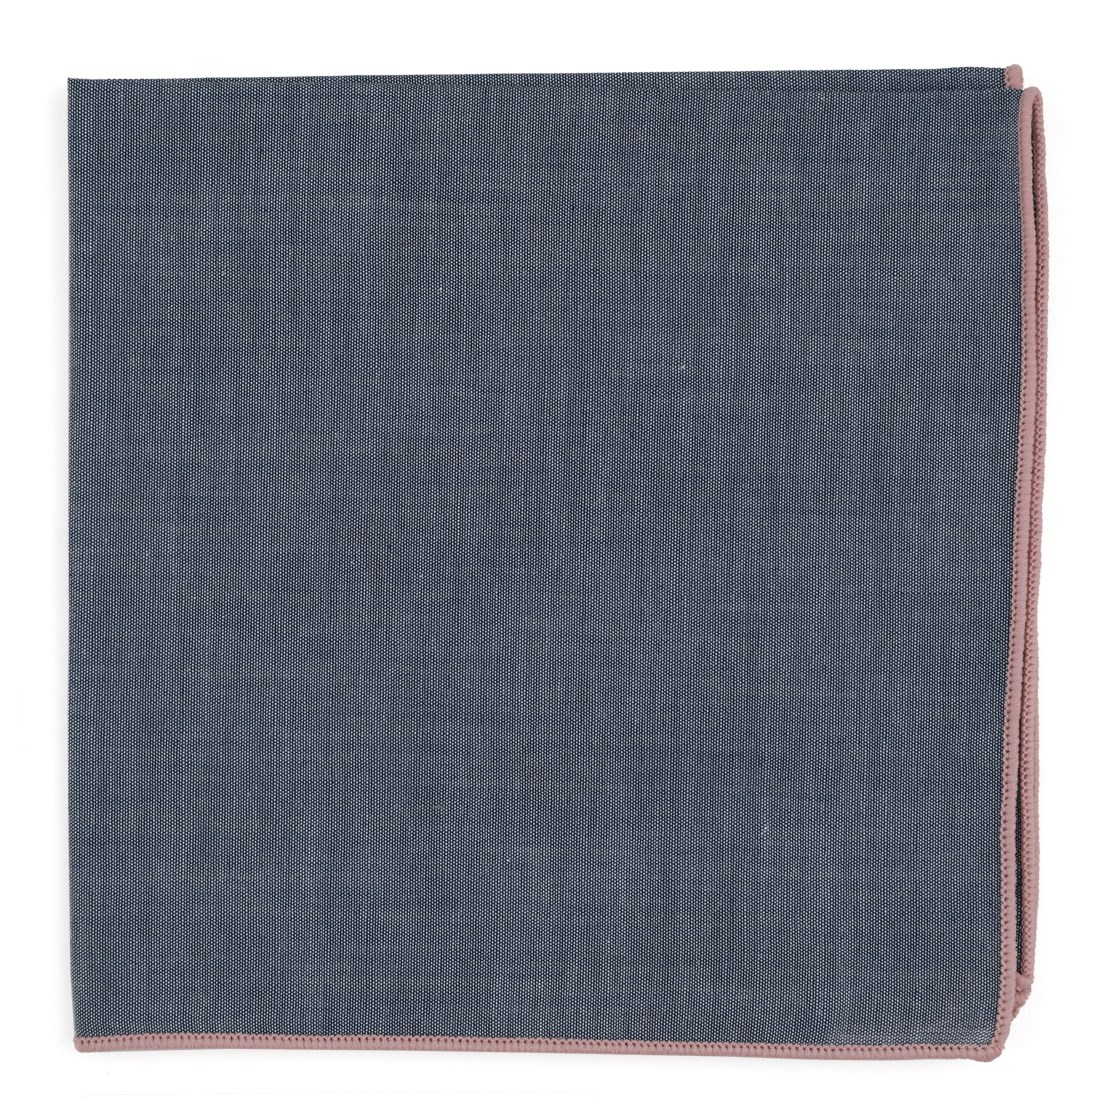 "Bhldn Denim Chambray With Border - Blush Pink - 13"" x 13"" - Pocket Squares"